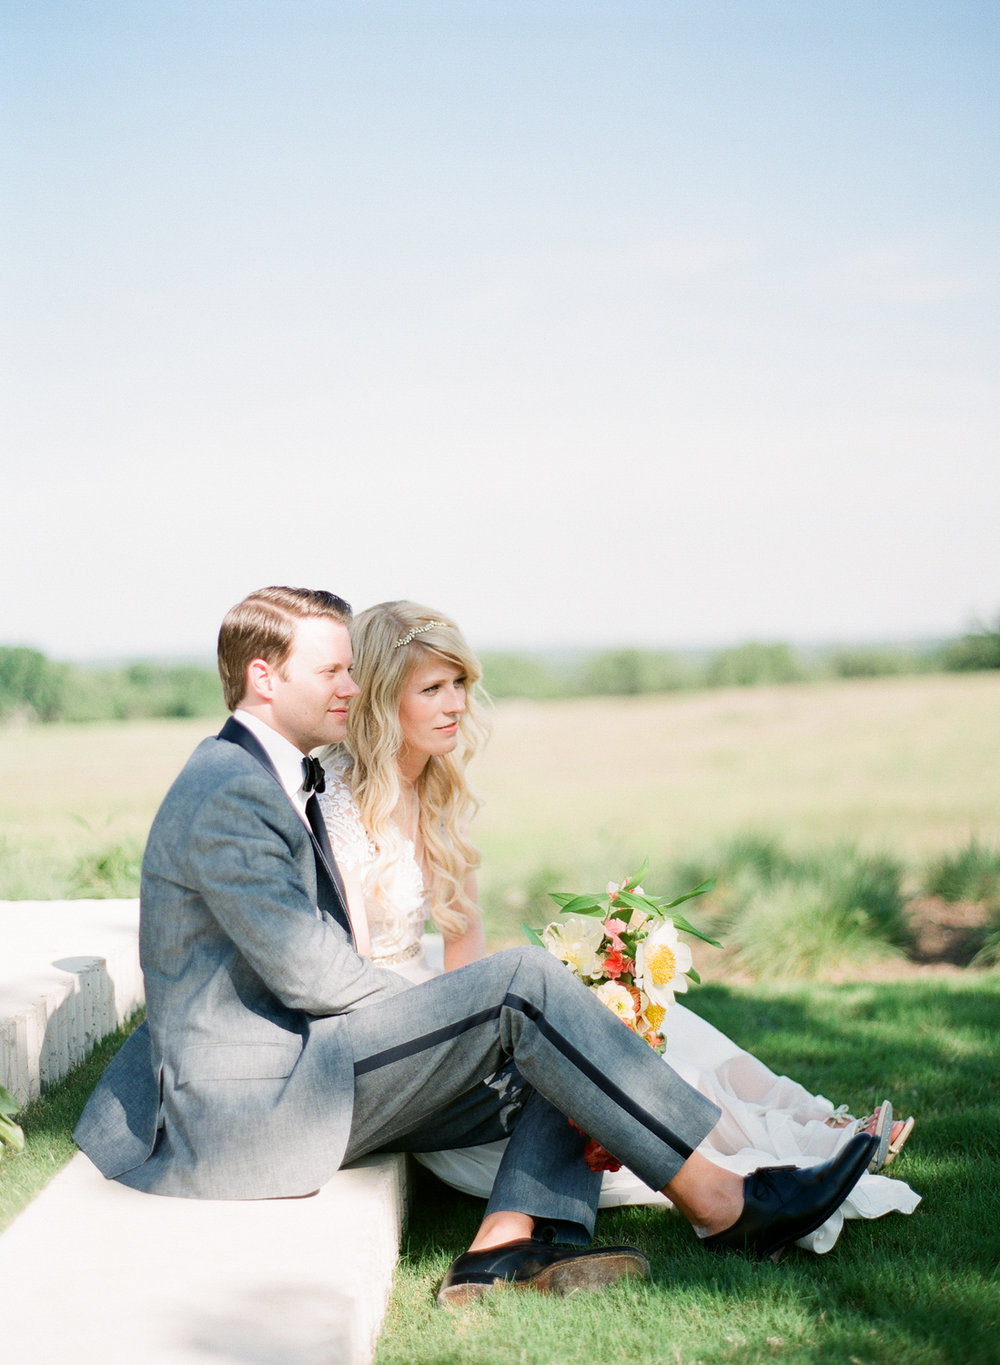 PROSPECT_HOUSE_WEDDING_AUSTIN_TX_BY_MATTHEW_MOORE_PHOTOGRAPHY_00122.jpg